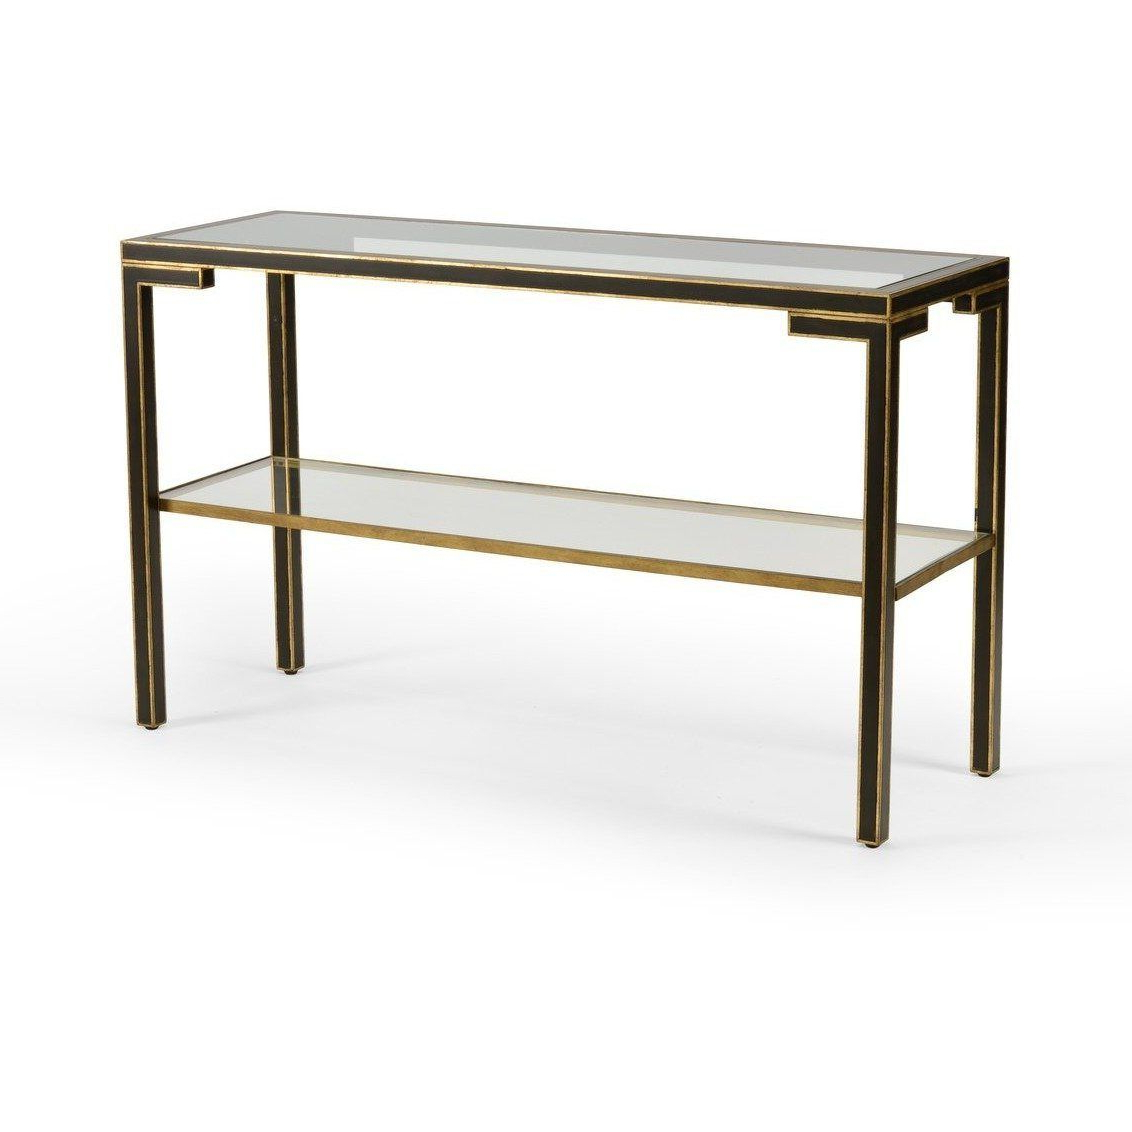 Chelsea House Decker Console 381874 | Products | Console, House, Chelsea Intended For Parsons Grey Marble Top & Dark Steel Base 48X16 Console Tables (View 2 of 20)